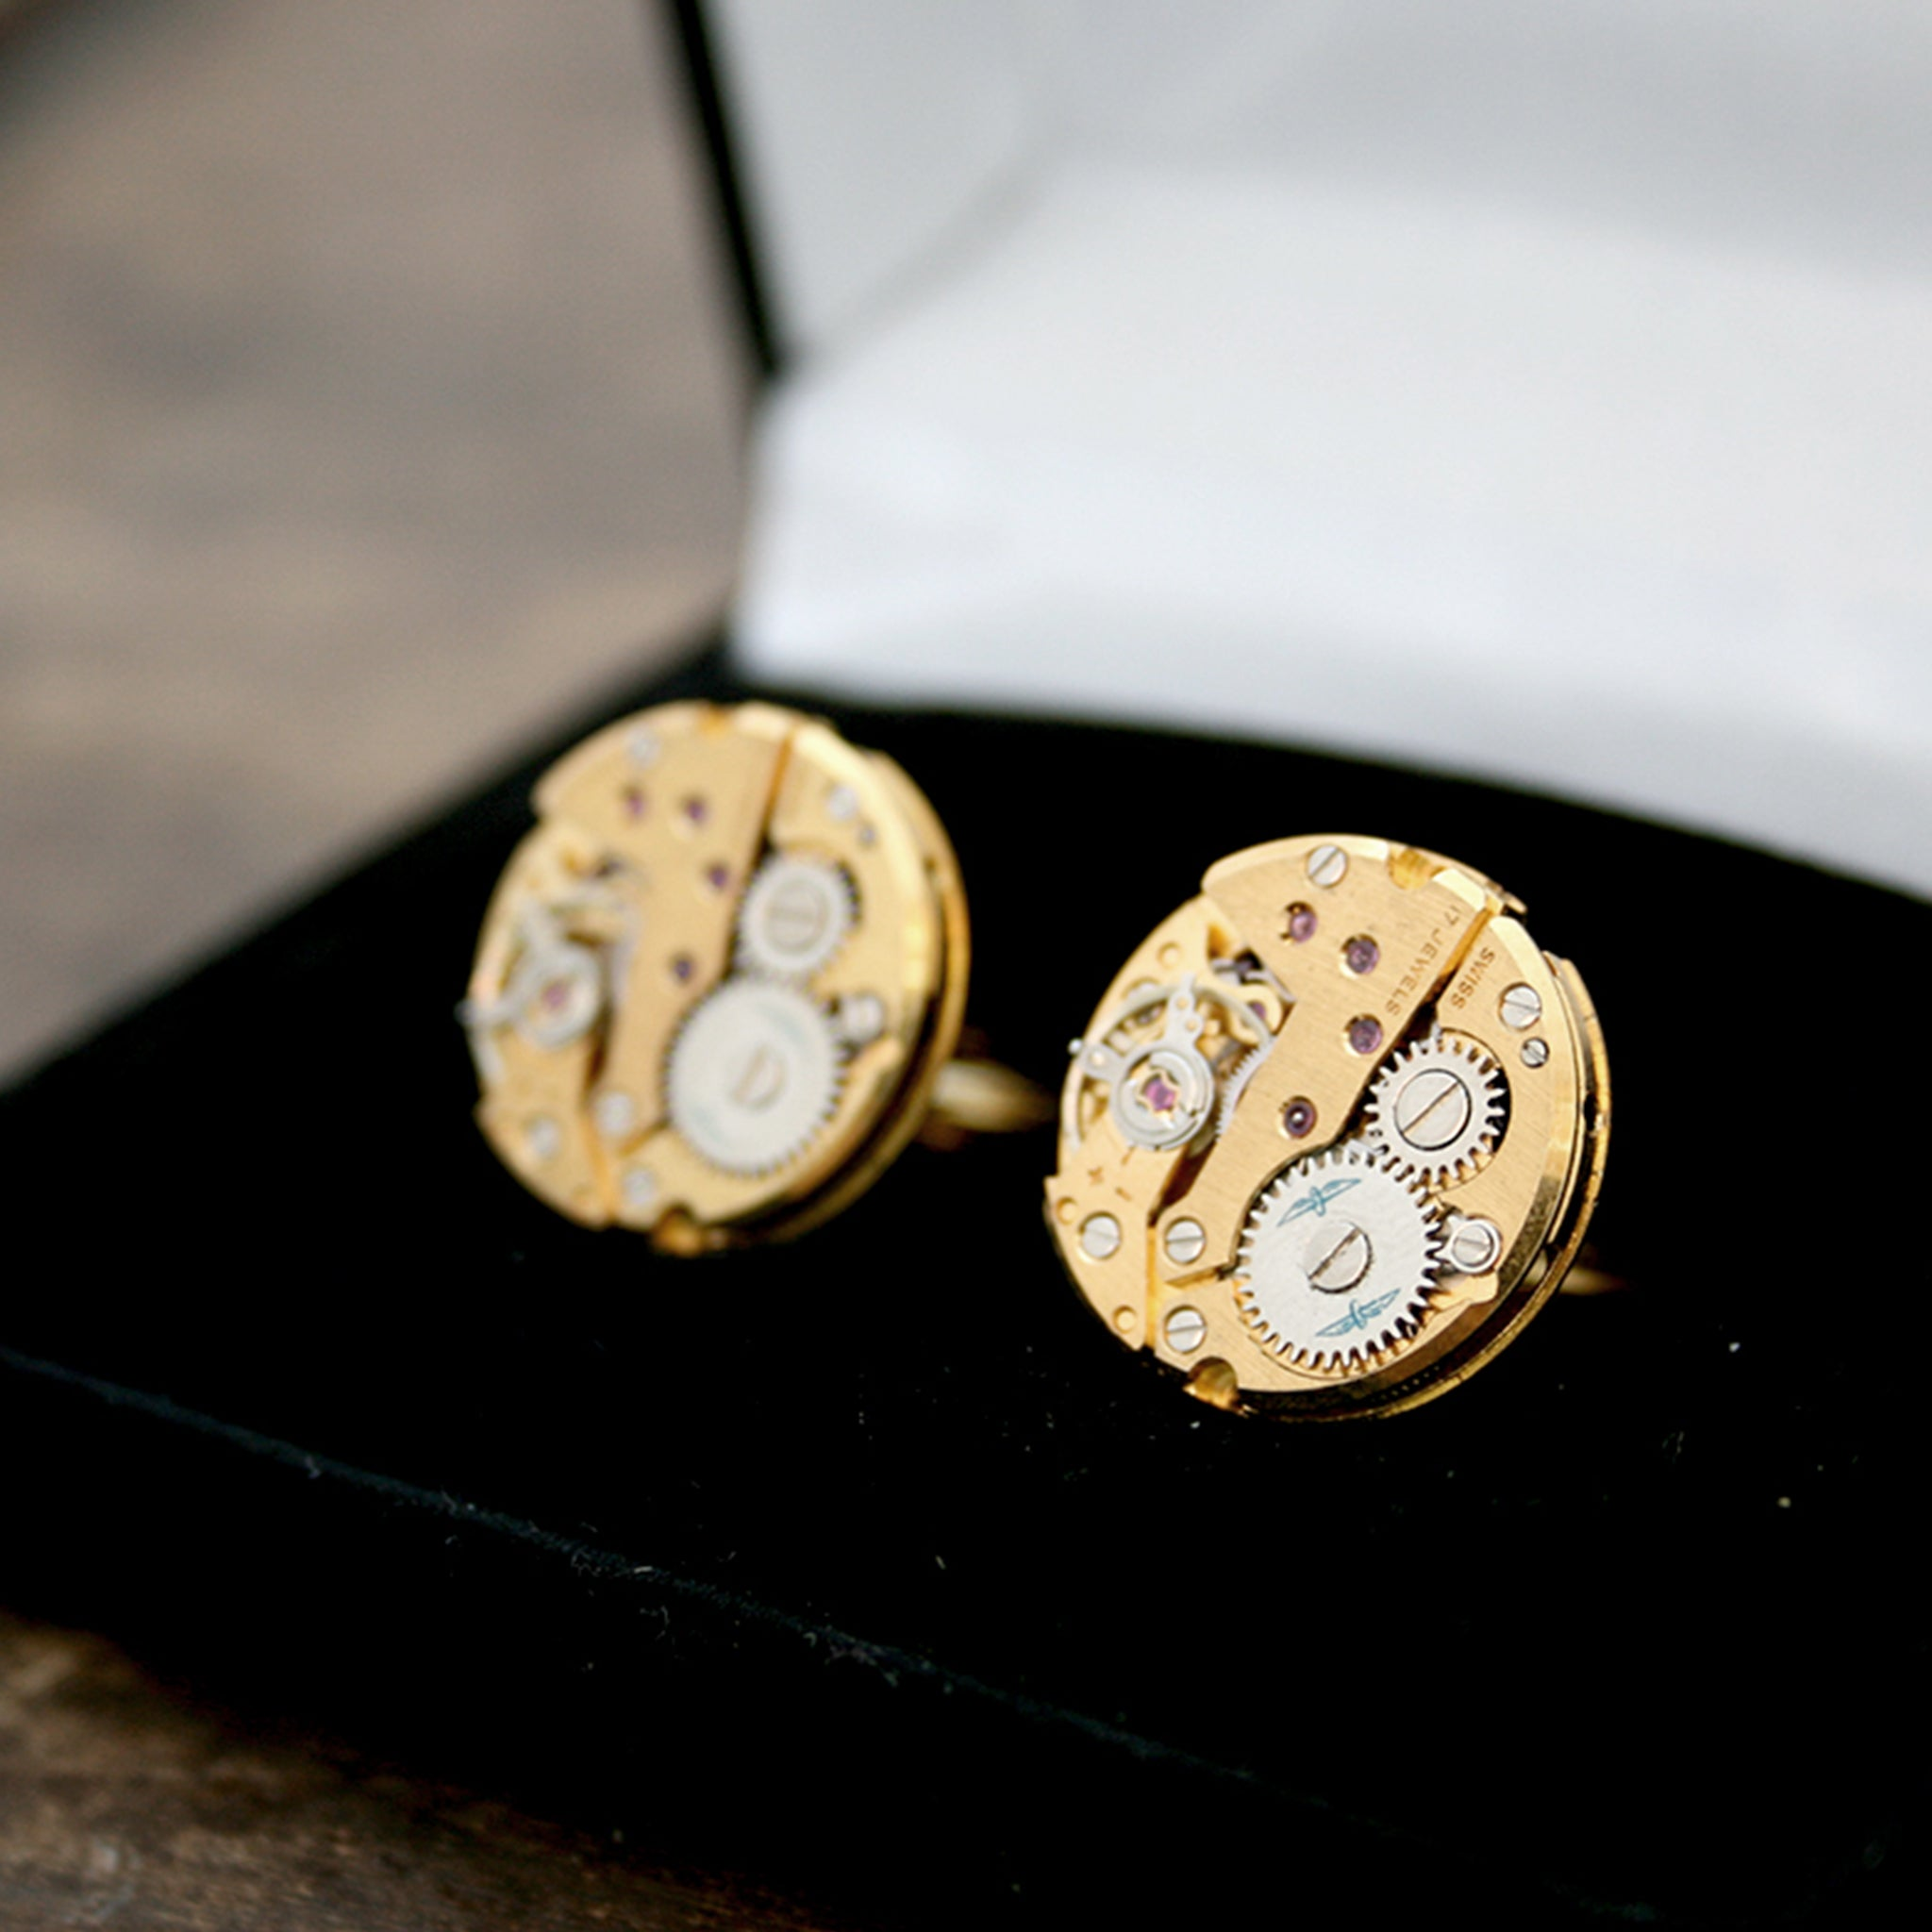 Real Watch Cufflinks in Gold Tone